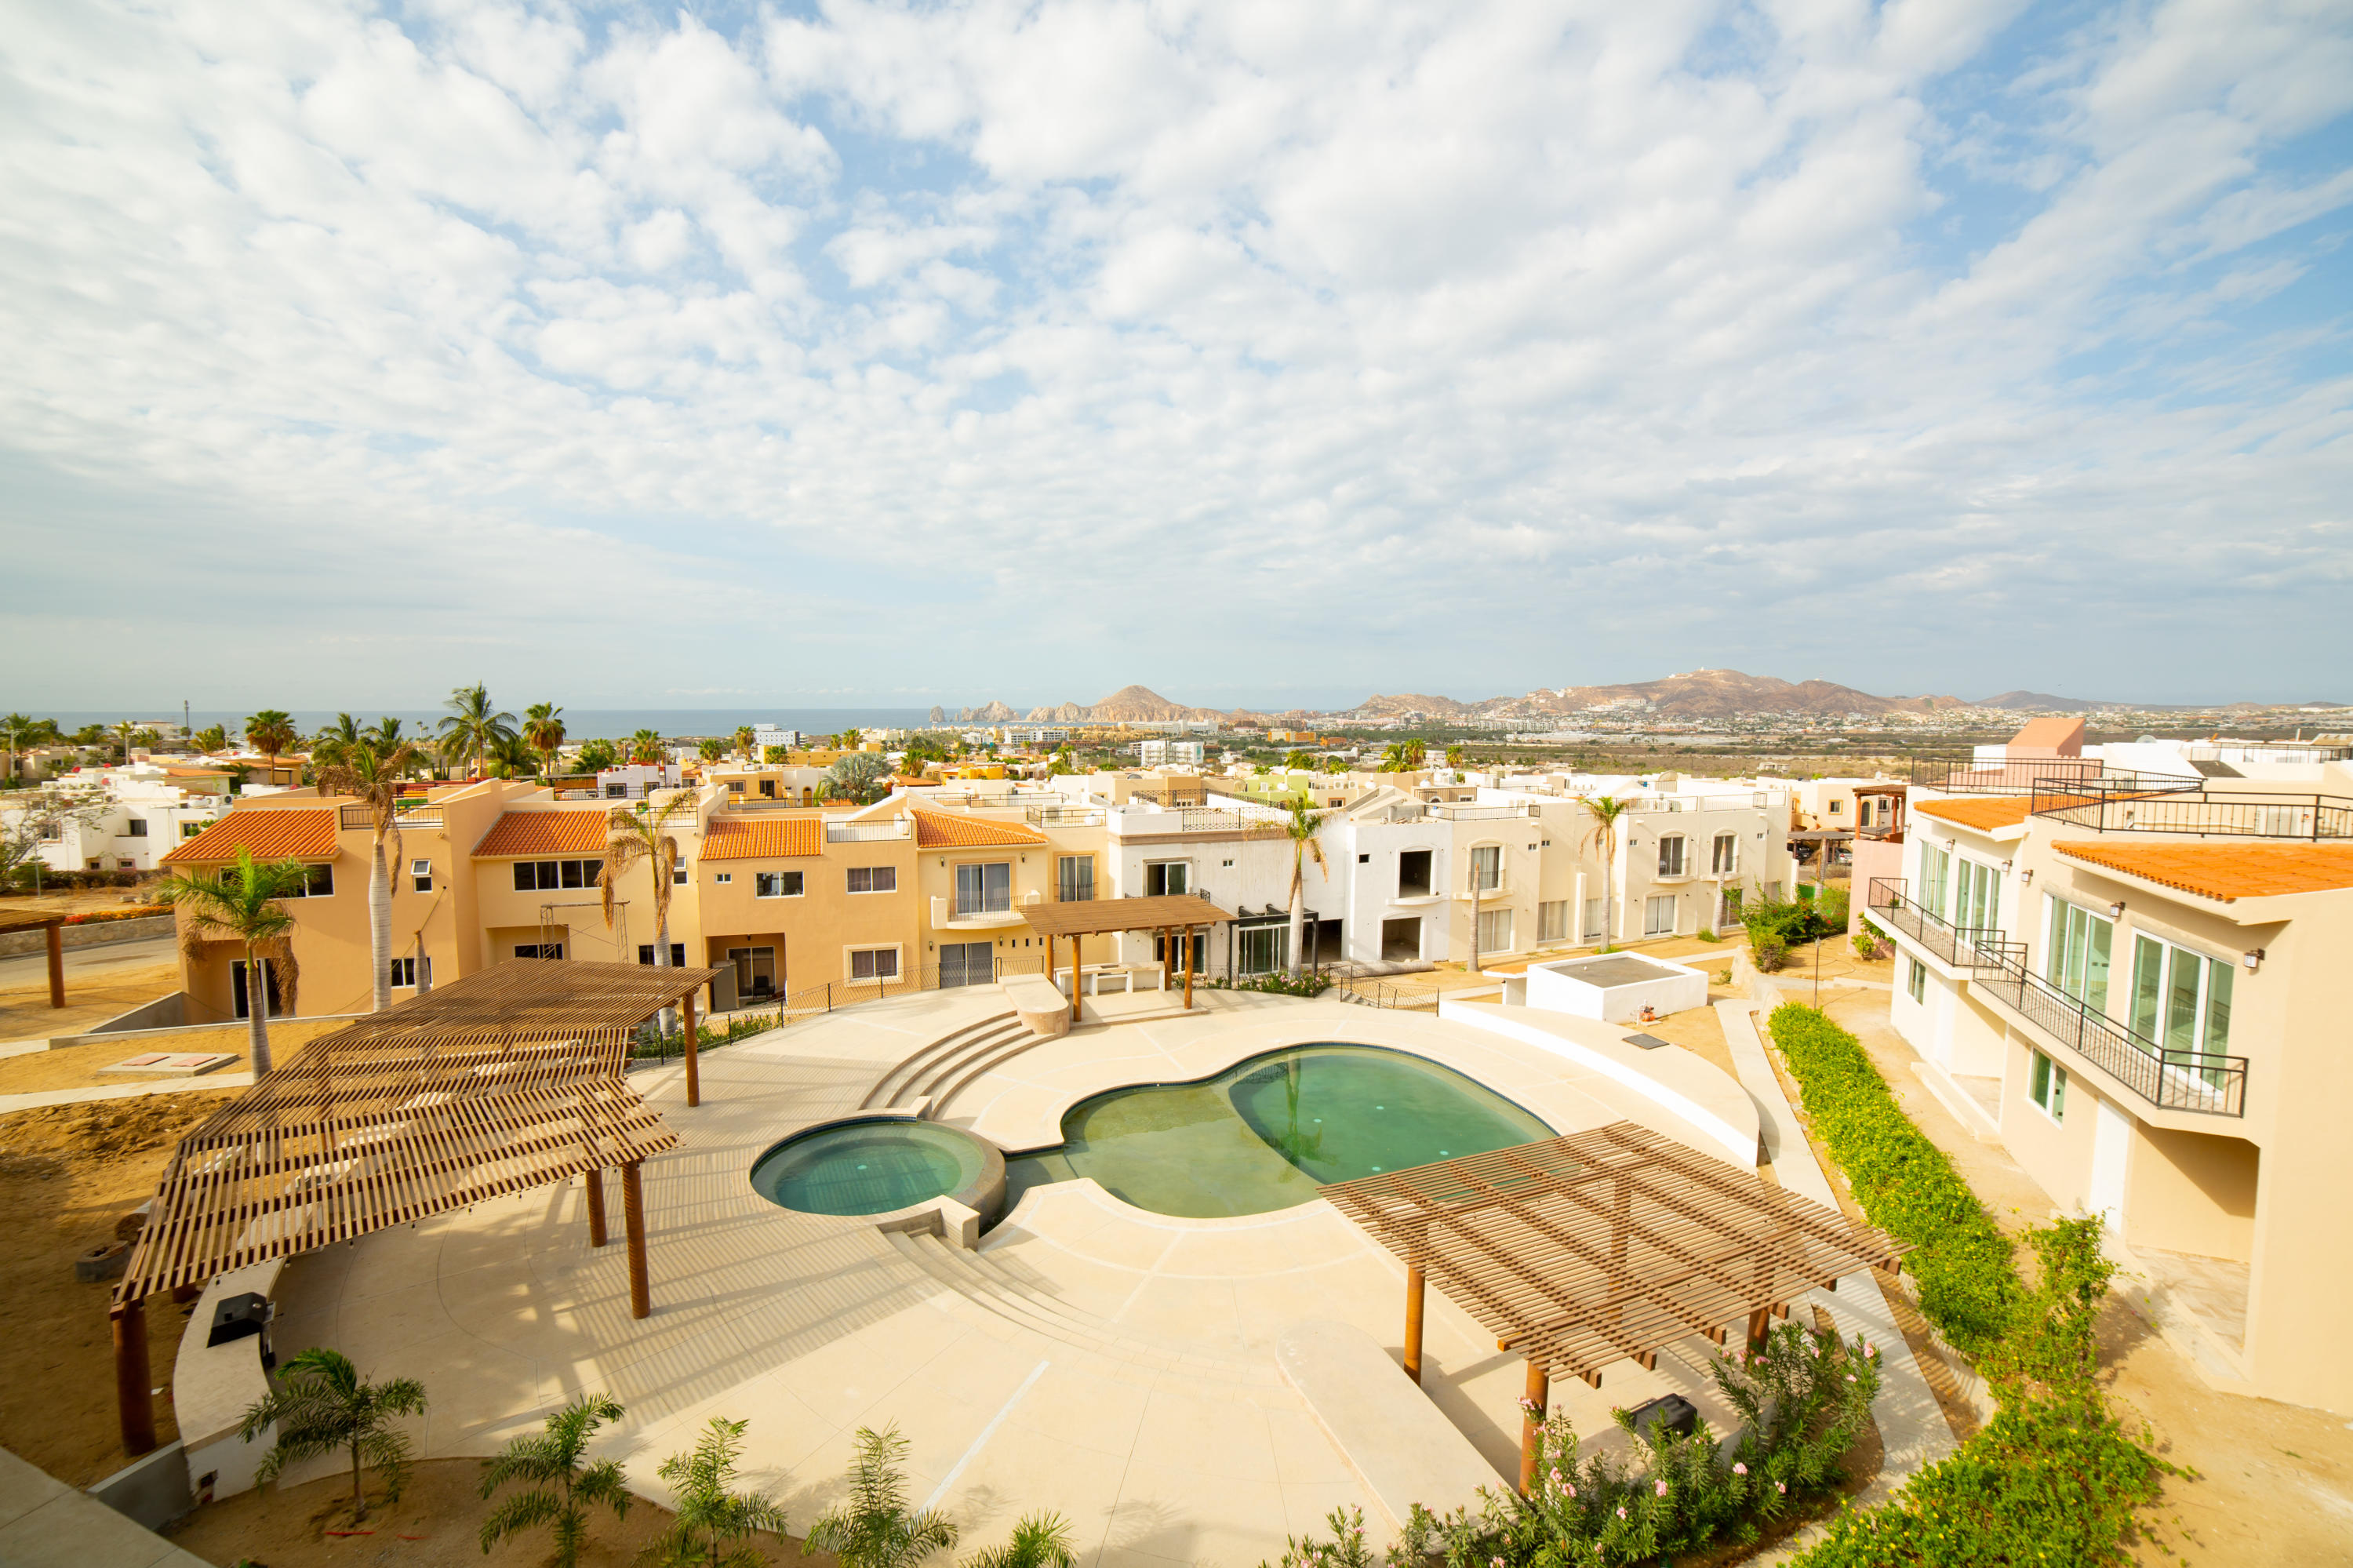 This is 1 of only 6 left out of 30 new beautiful homes in villas del tezal. Fully furnished turn key ready to live or rent. Massive 3 floor home offers plenty of areas to relax. Roof top hot tub to sip wine and enjoy the view and a grill to serve your guests delicious bbq'd food while entertaining. All with a gorgeous view. The photos do not do the view justice at all you need to come down and look for yourself. We have 6 to chose from...Come before we sell them all!!